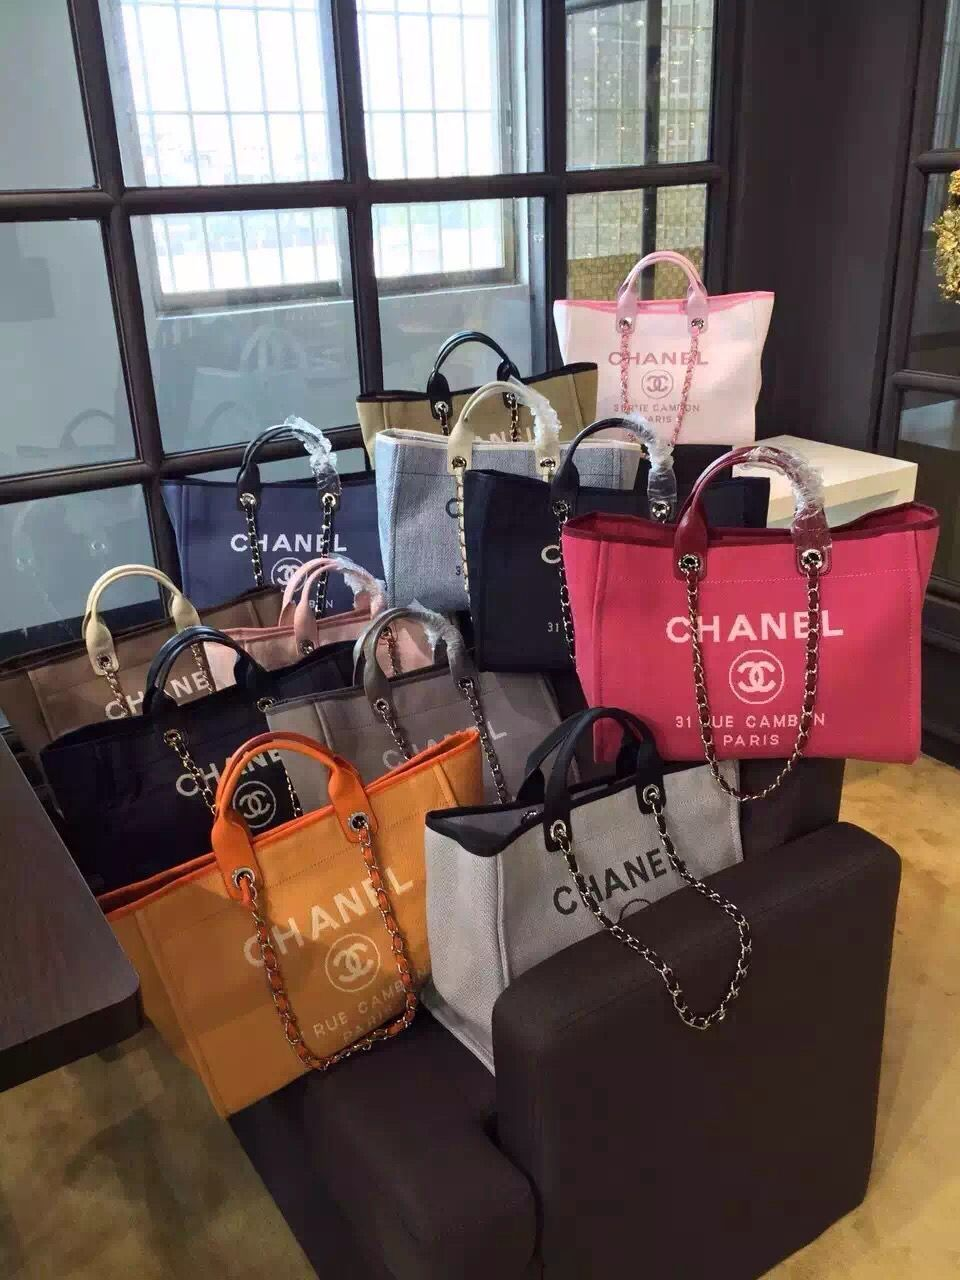 7b492b1ae583b8 Chanel Toile Deauville Canvas Shopping Tote Bag 2015-2016 Collection ...